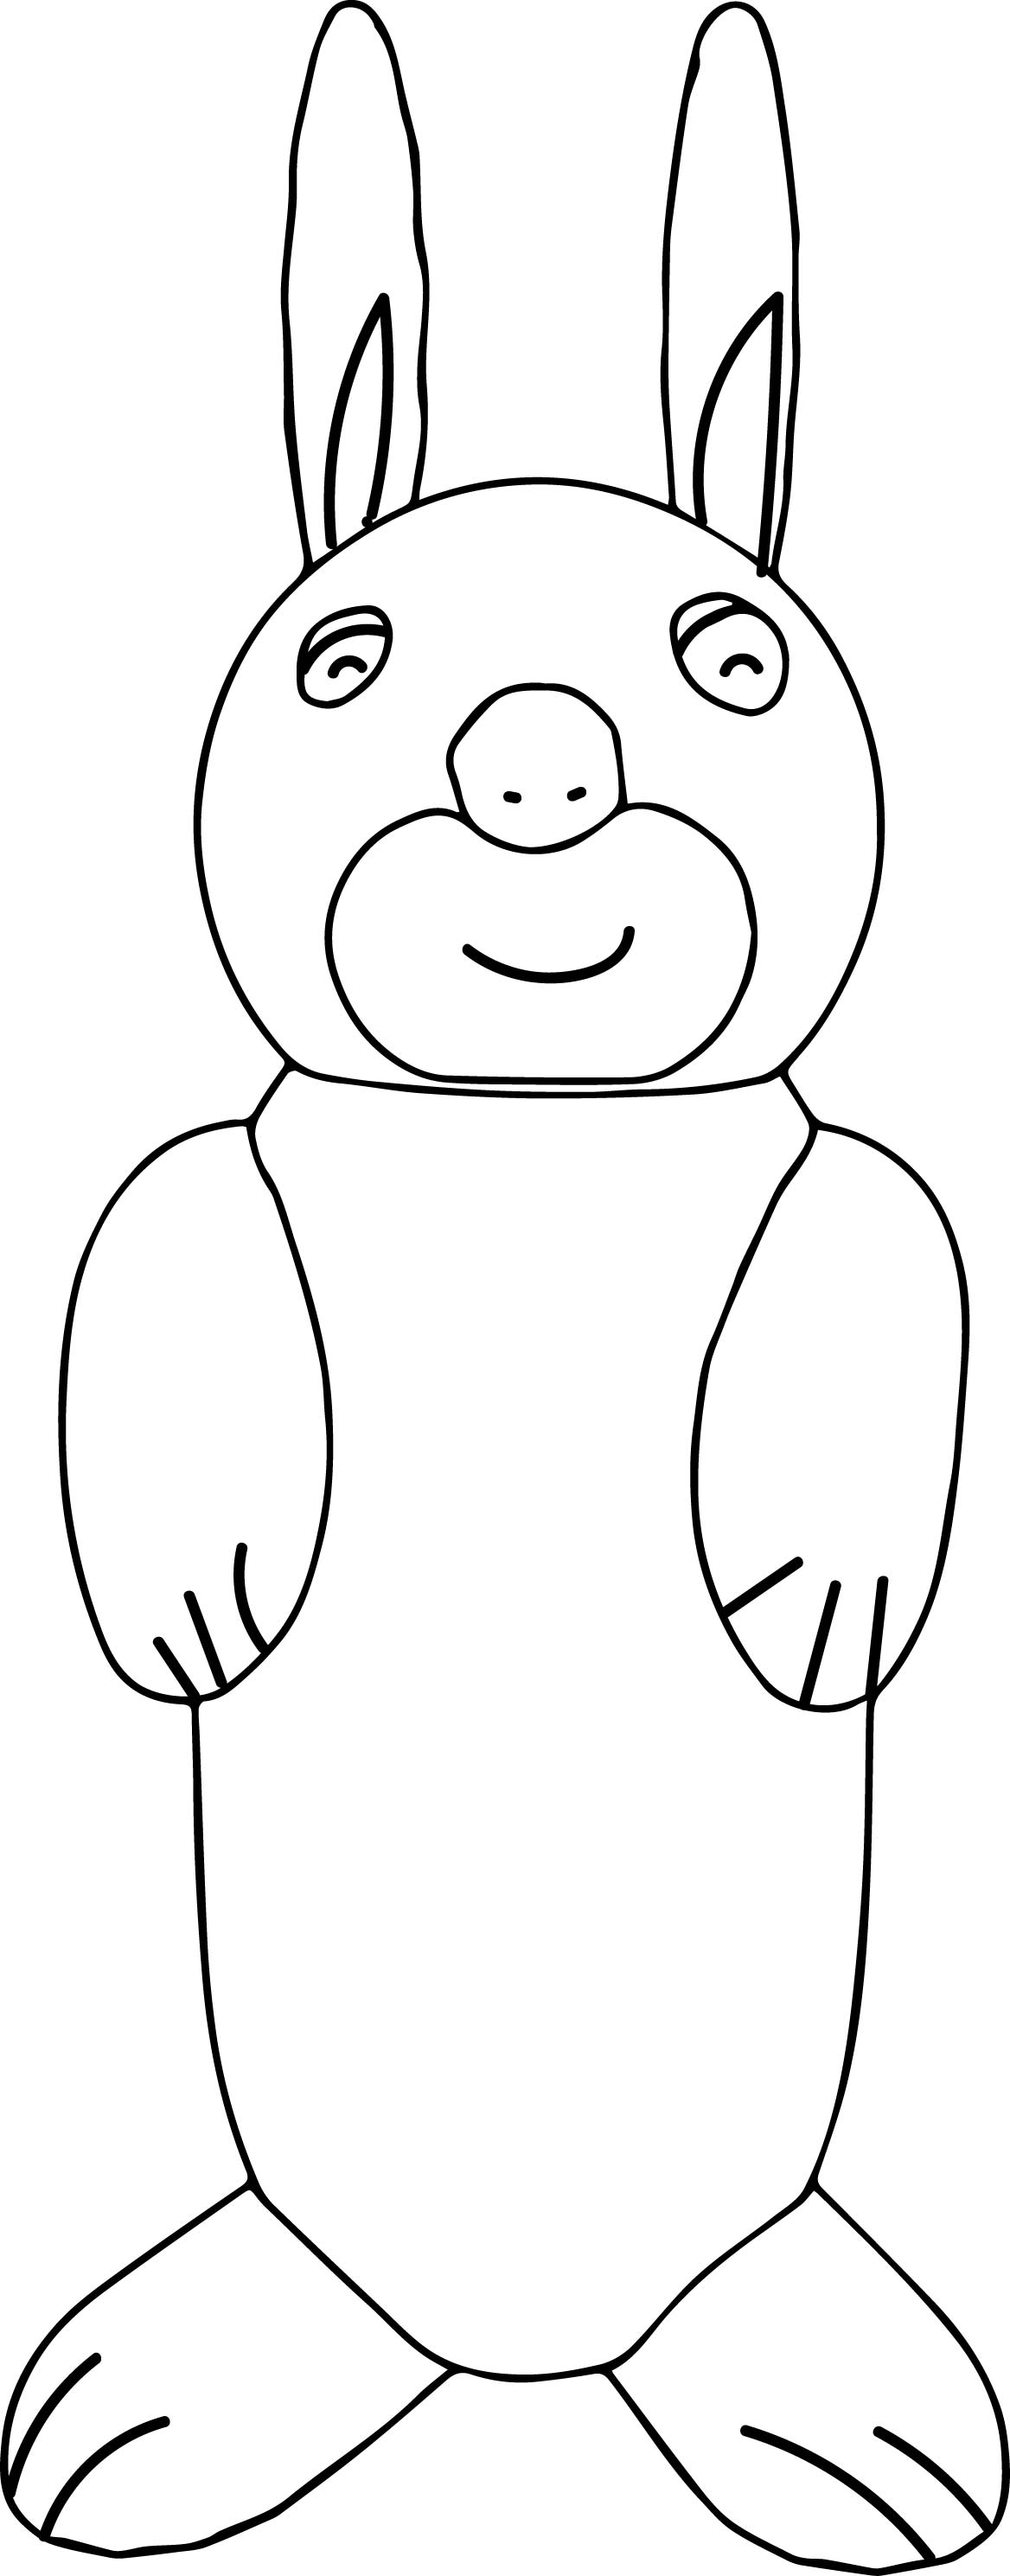 gandhiji standing coloring pages - photo#45